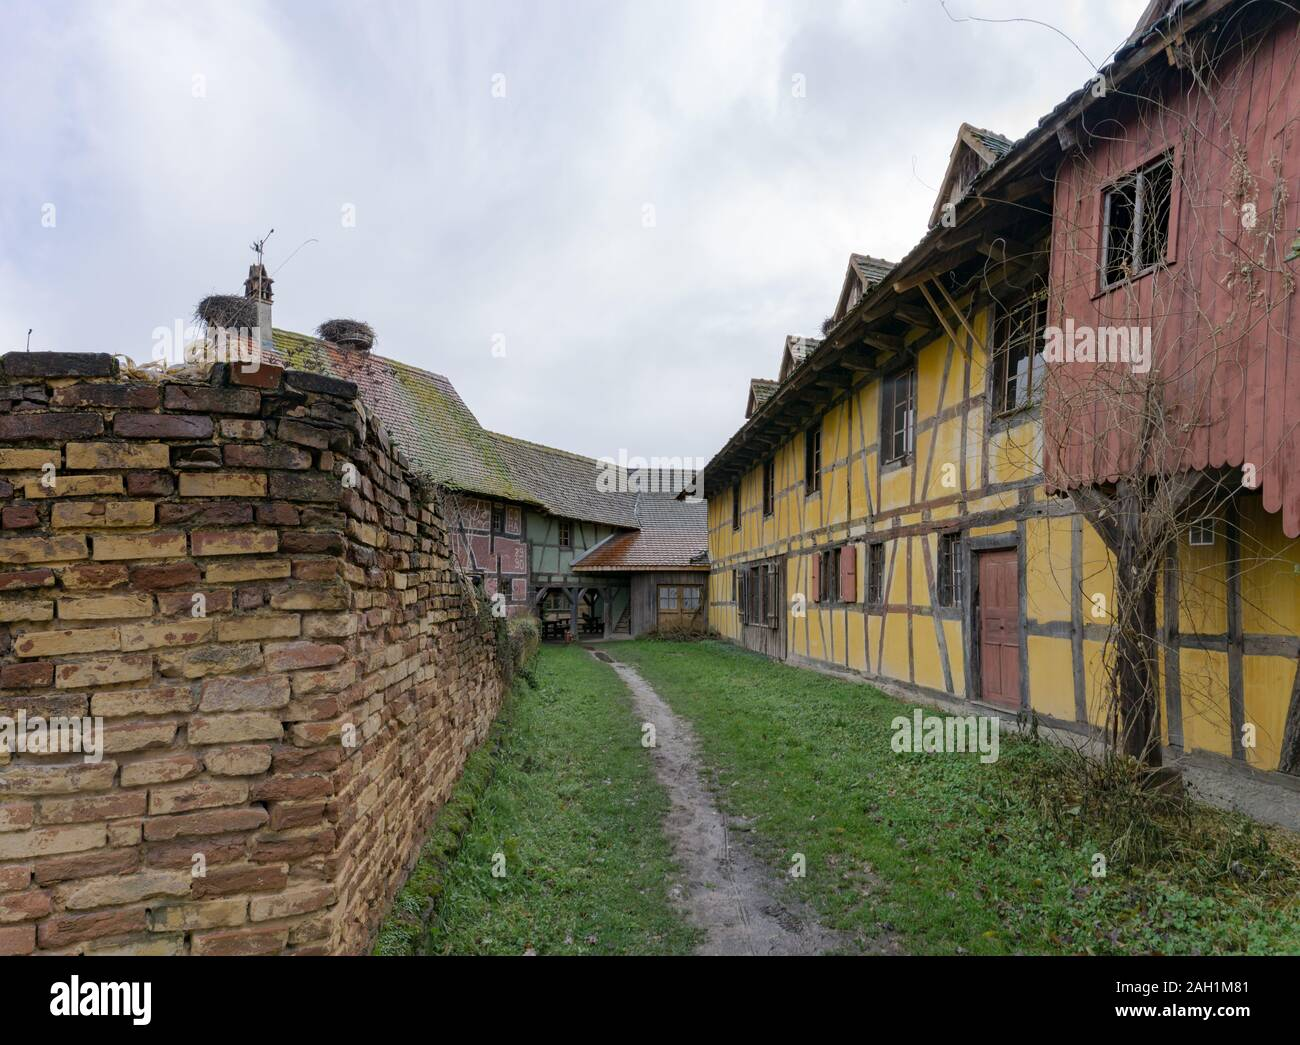 Ungersheim, Haut-Rhin / France - 13. December, 2019: view of historic half-timbered houses in the Alsace region of France Stock Photo